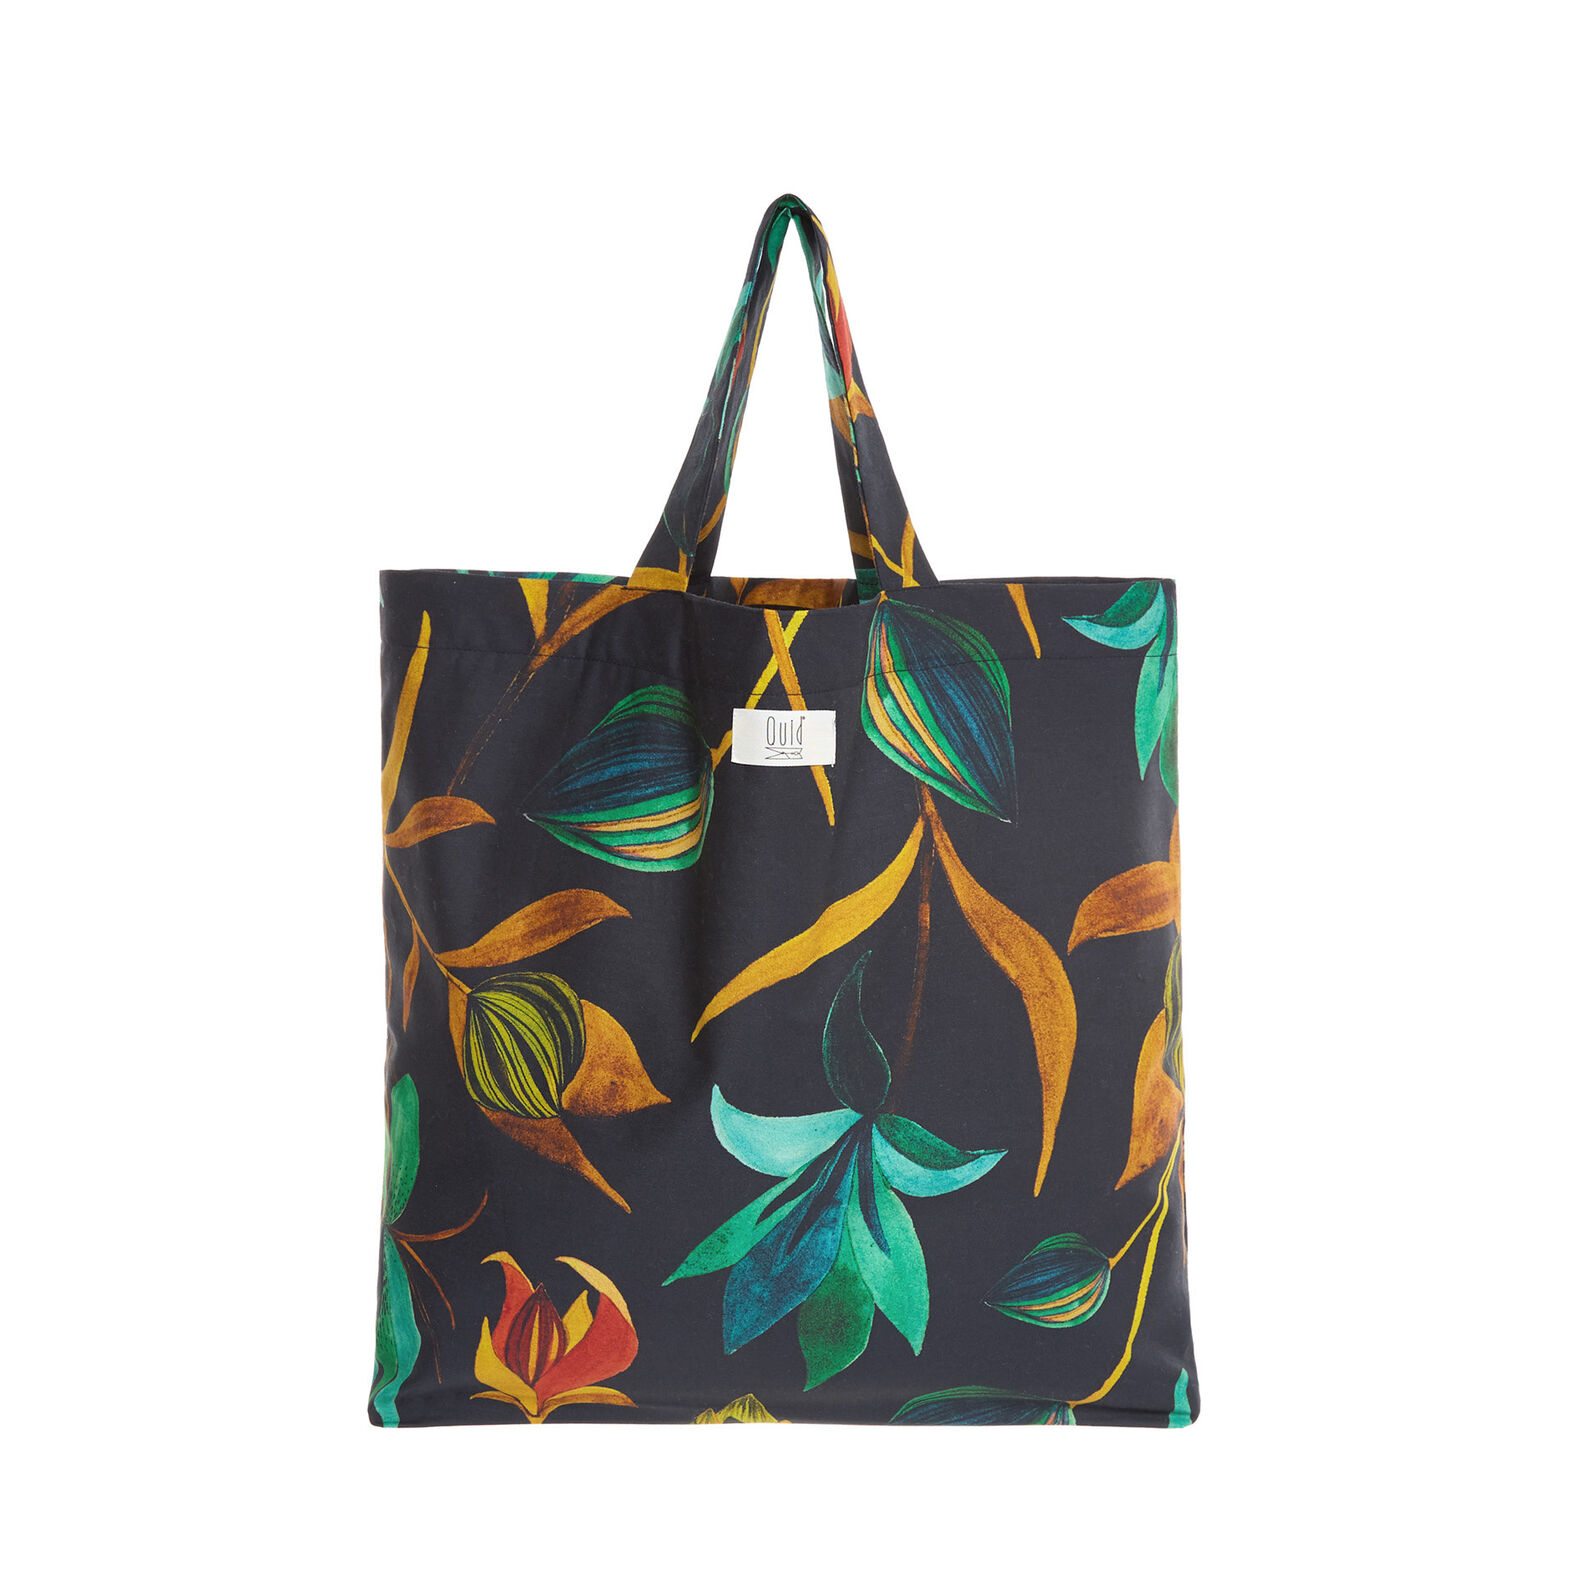 Cotton shopping bag with floral pattern